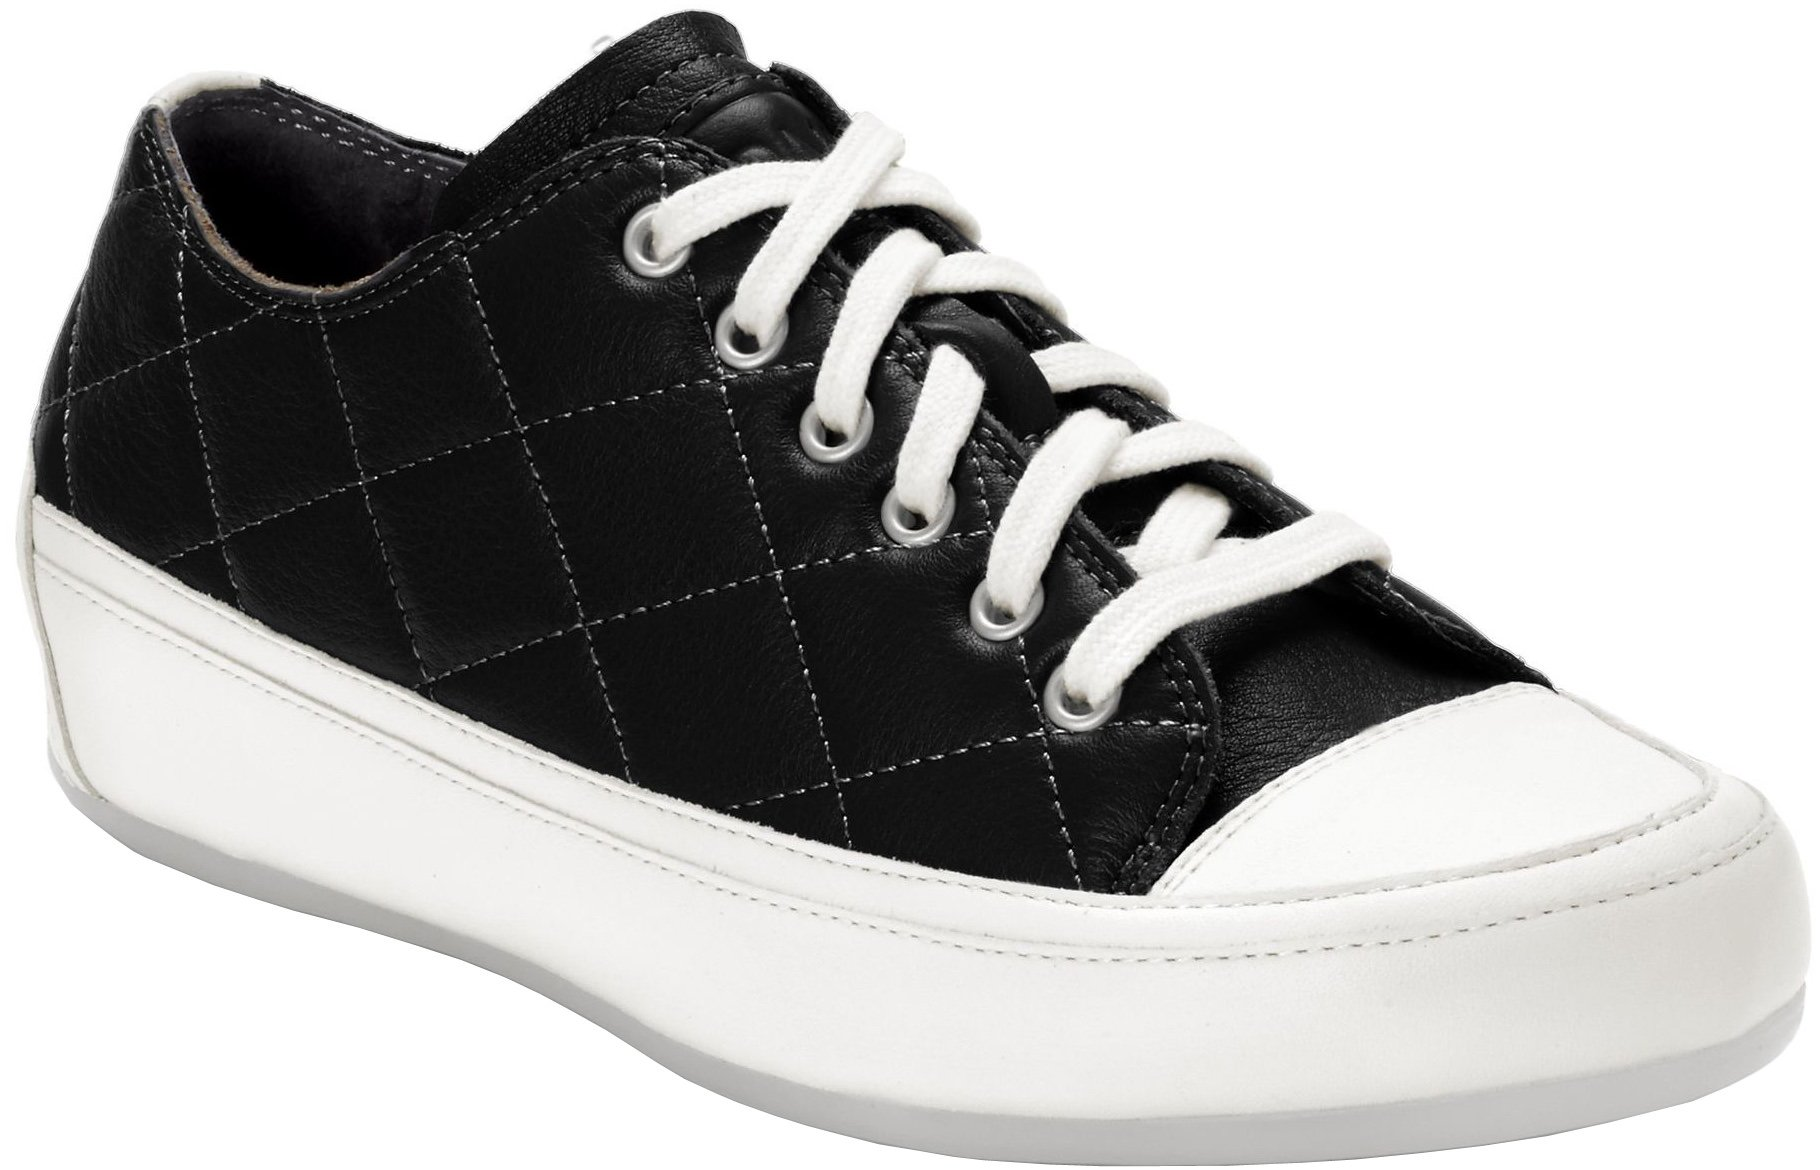 Vionic Womens Delight Edie Lace up Sneaker, Black, Size 9.5